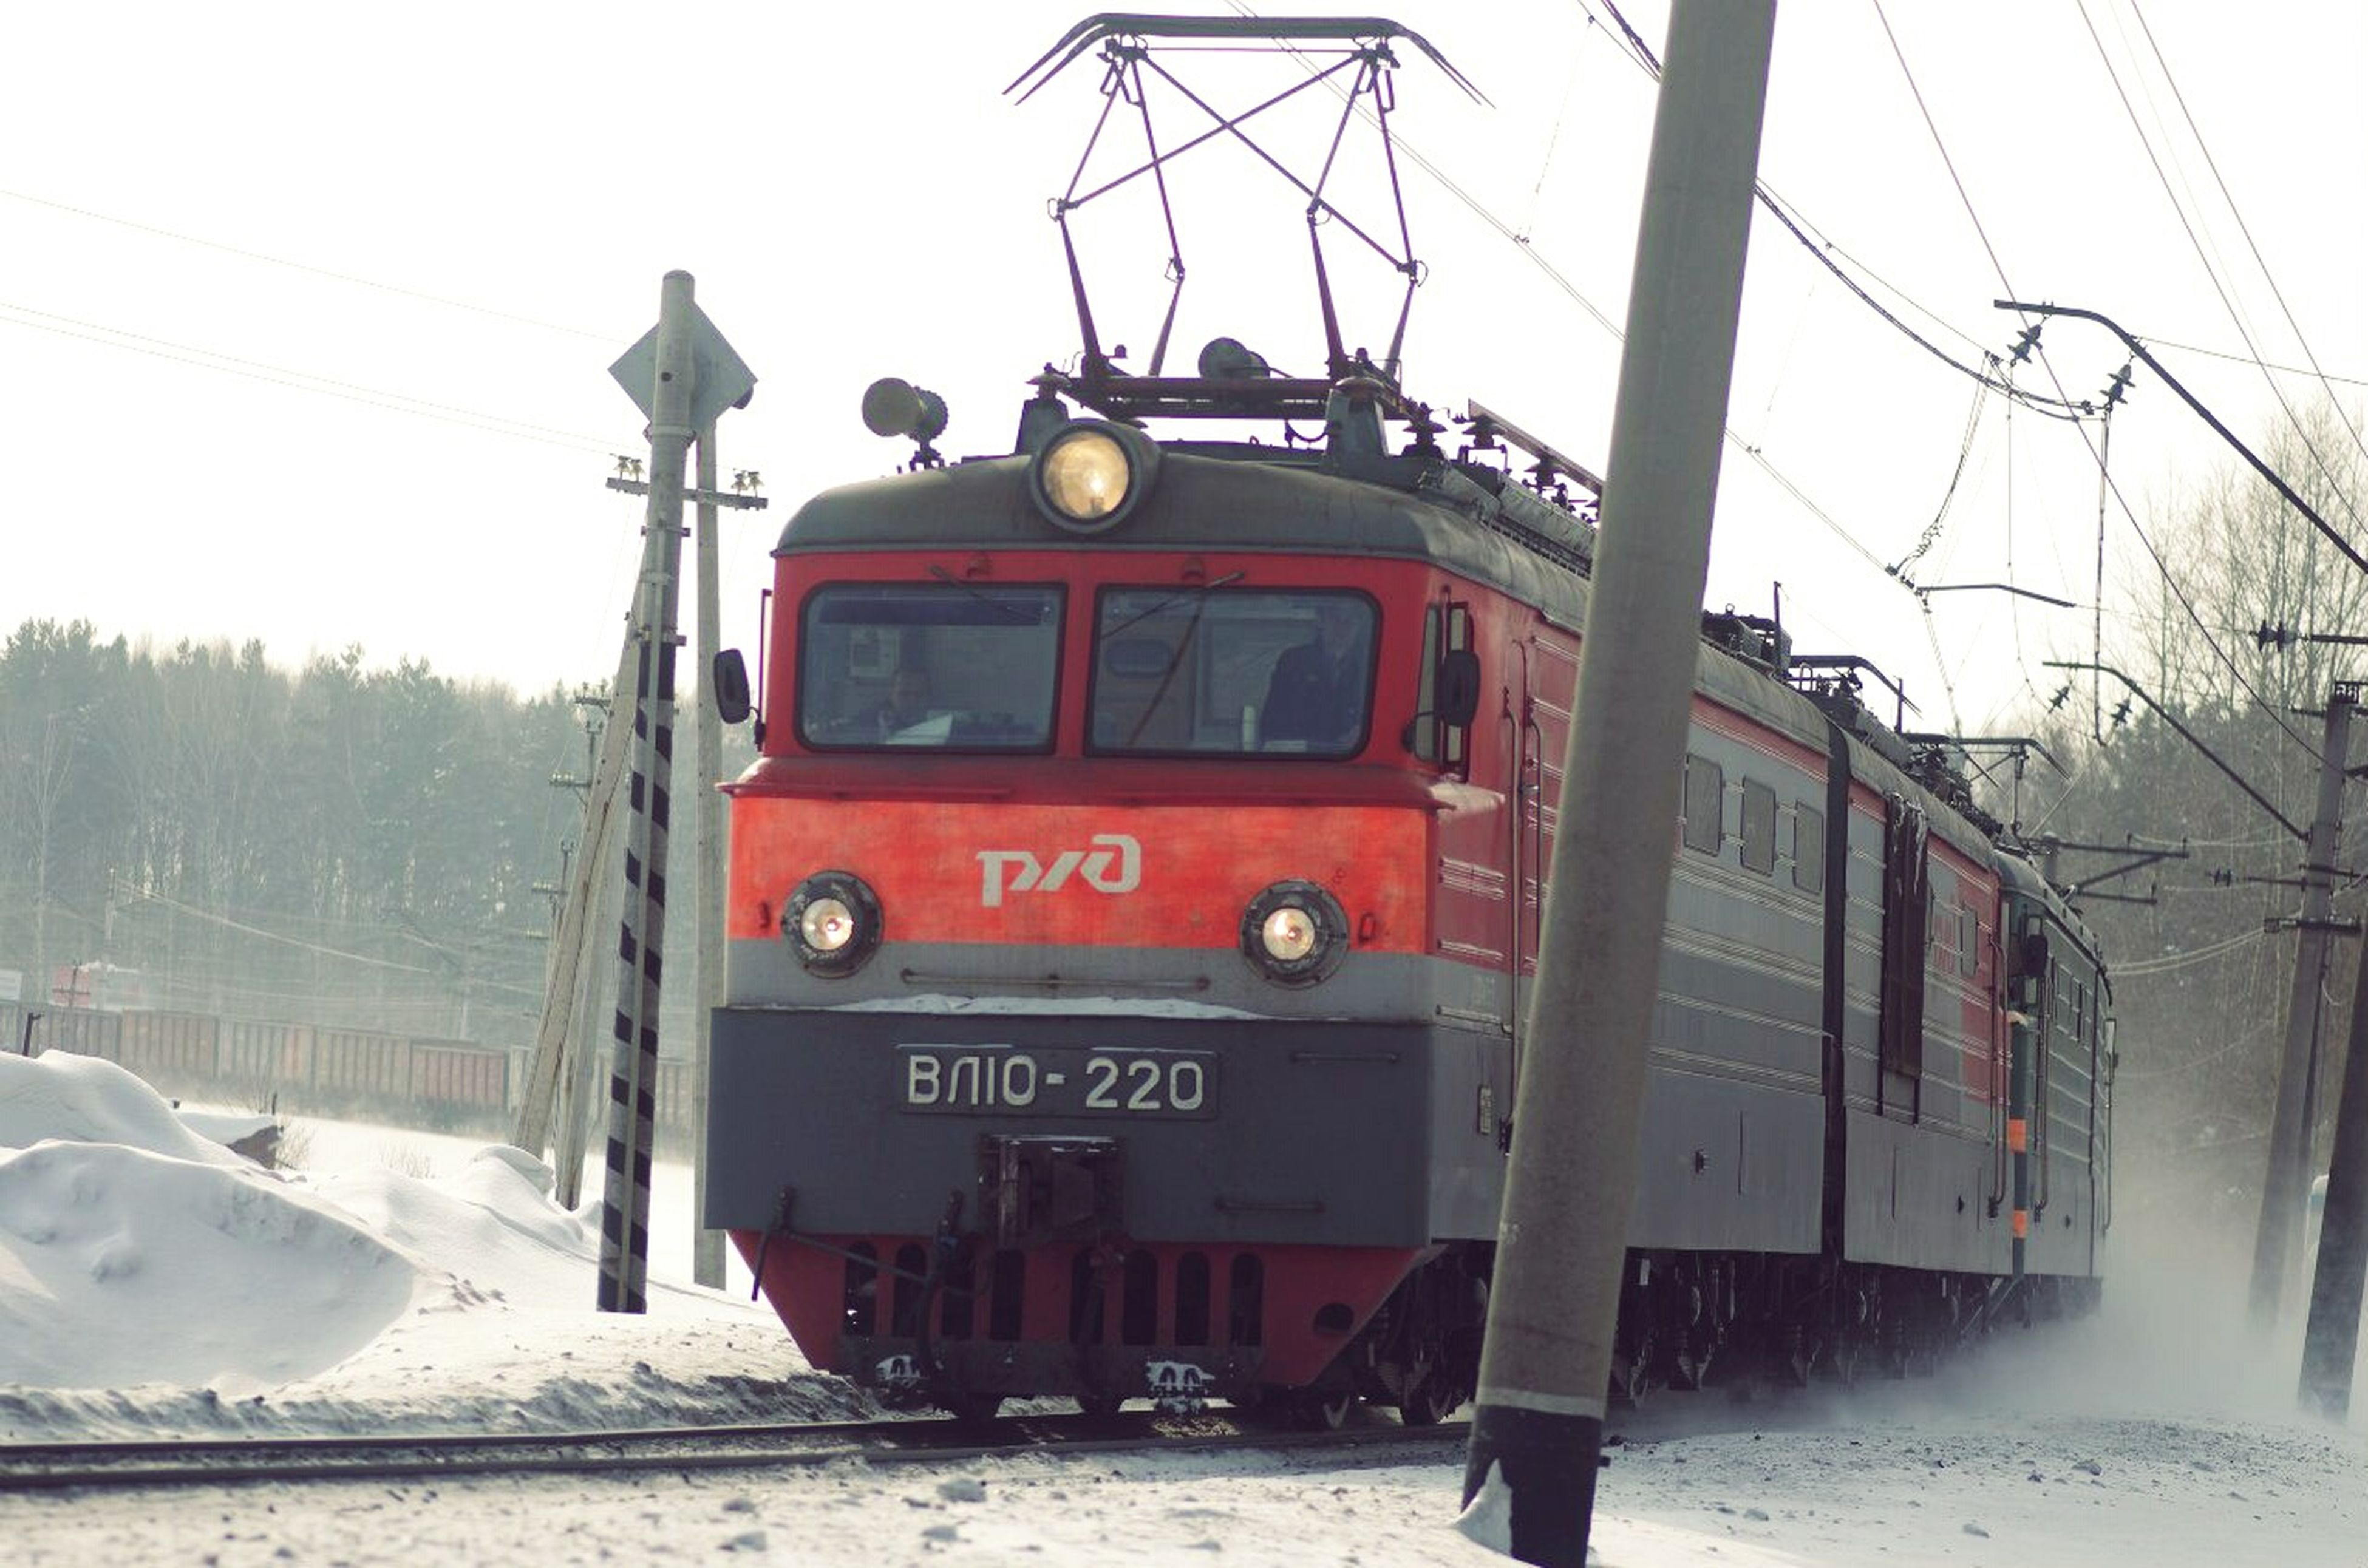 snow, cold temperature, transportation, winter, mode of transport, power line, season, railroad track, electricity pylon, land vehicle, weather, cable, electricity, building exterior, rail transportation, train - vehicle, public transportation, power supply, clear sky, built structure